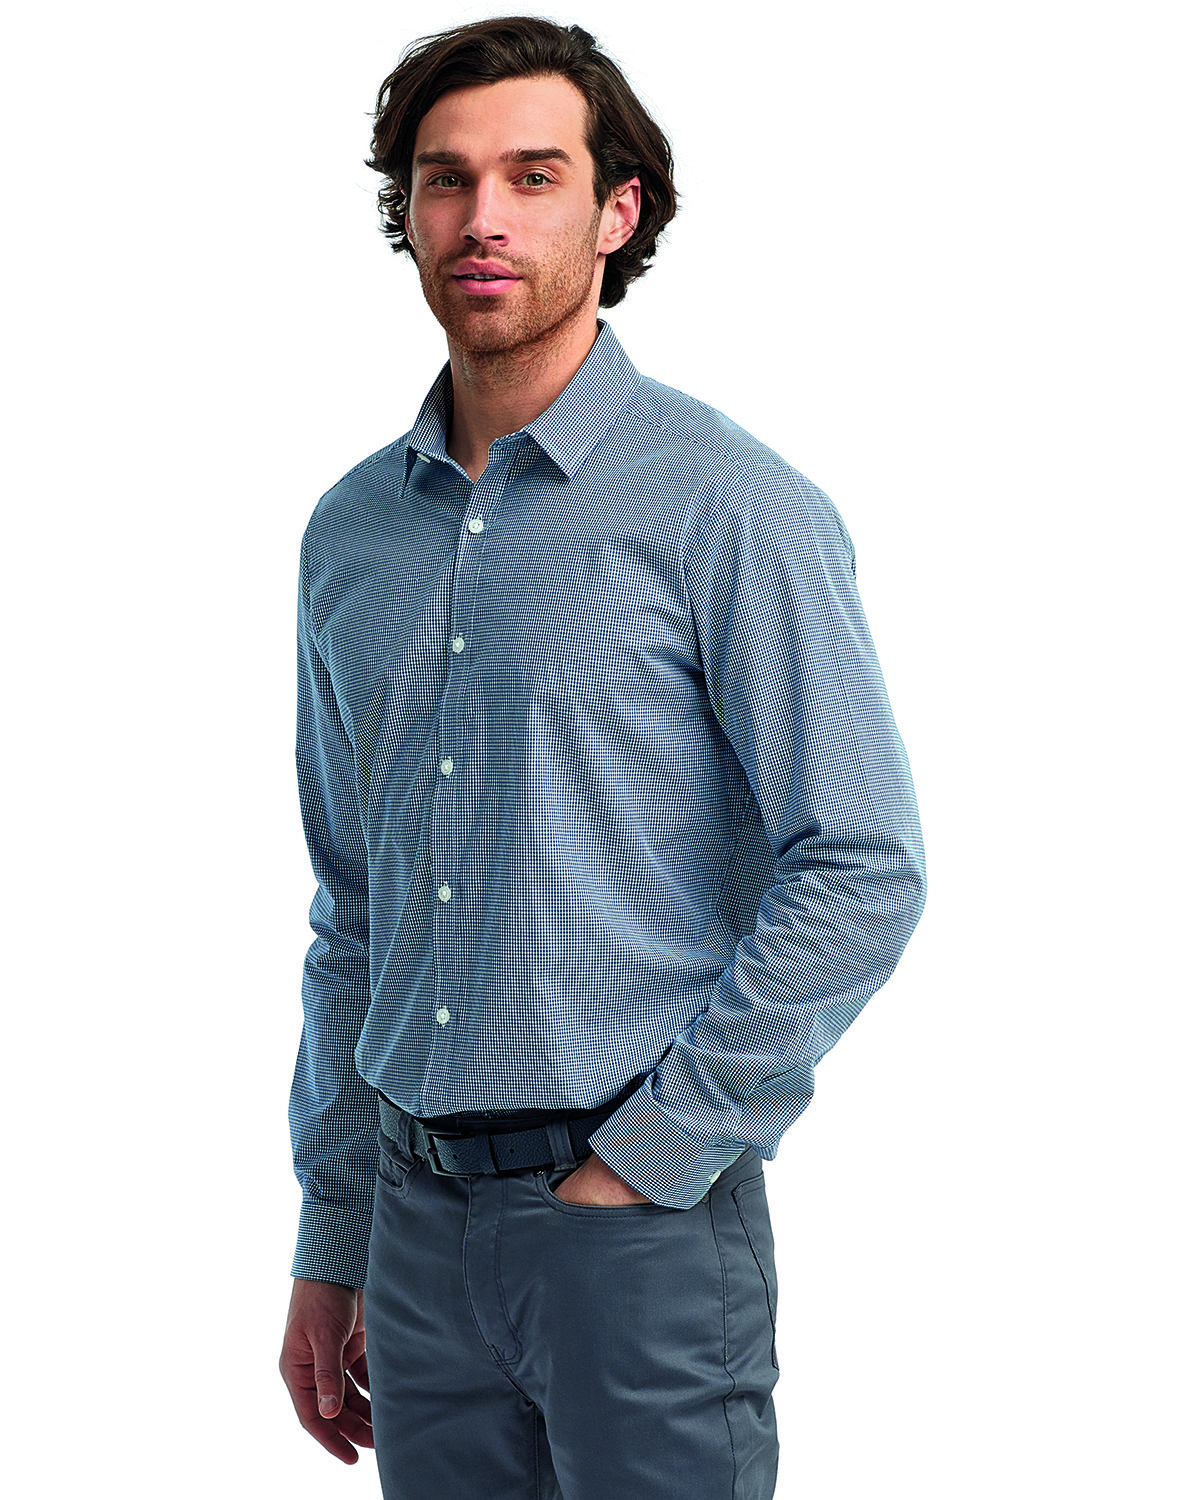 Artisan Collection by Reprime Men's Microcheck Gingham Long-Sleeve Cotton Shirt NAVY/ WHITE